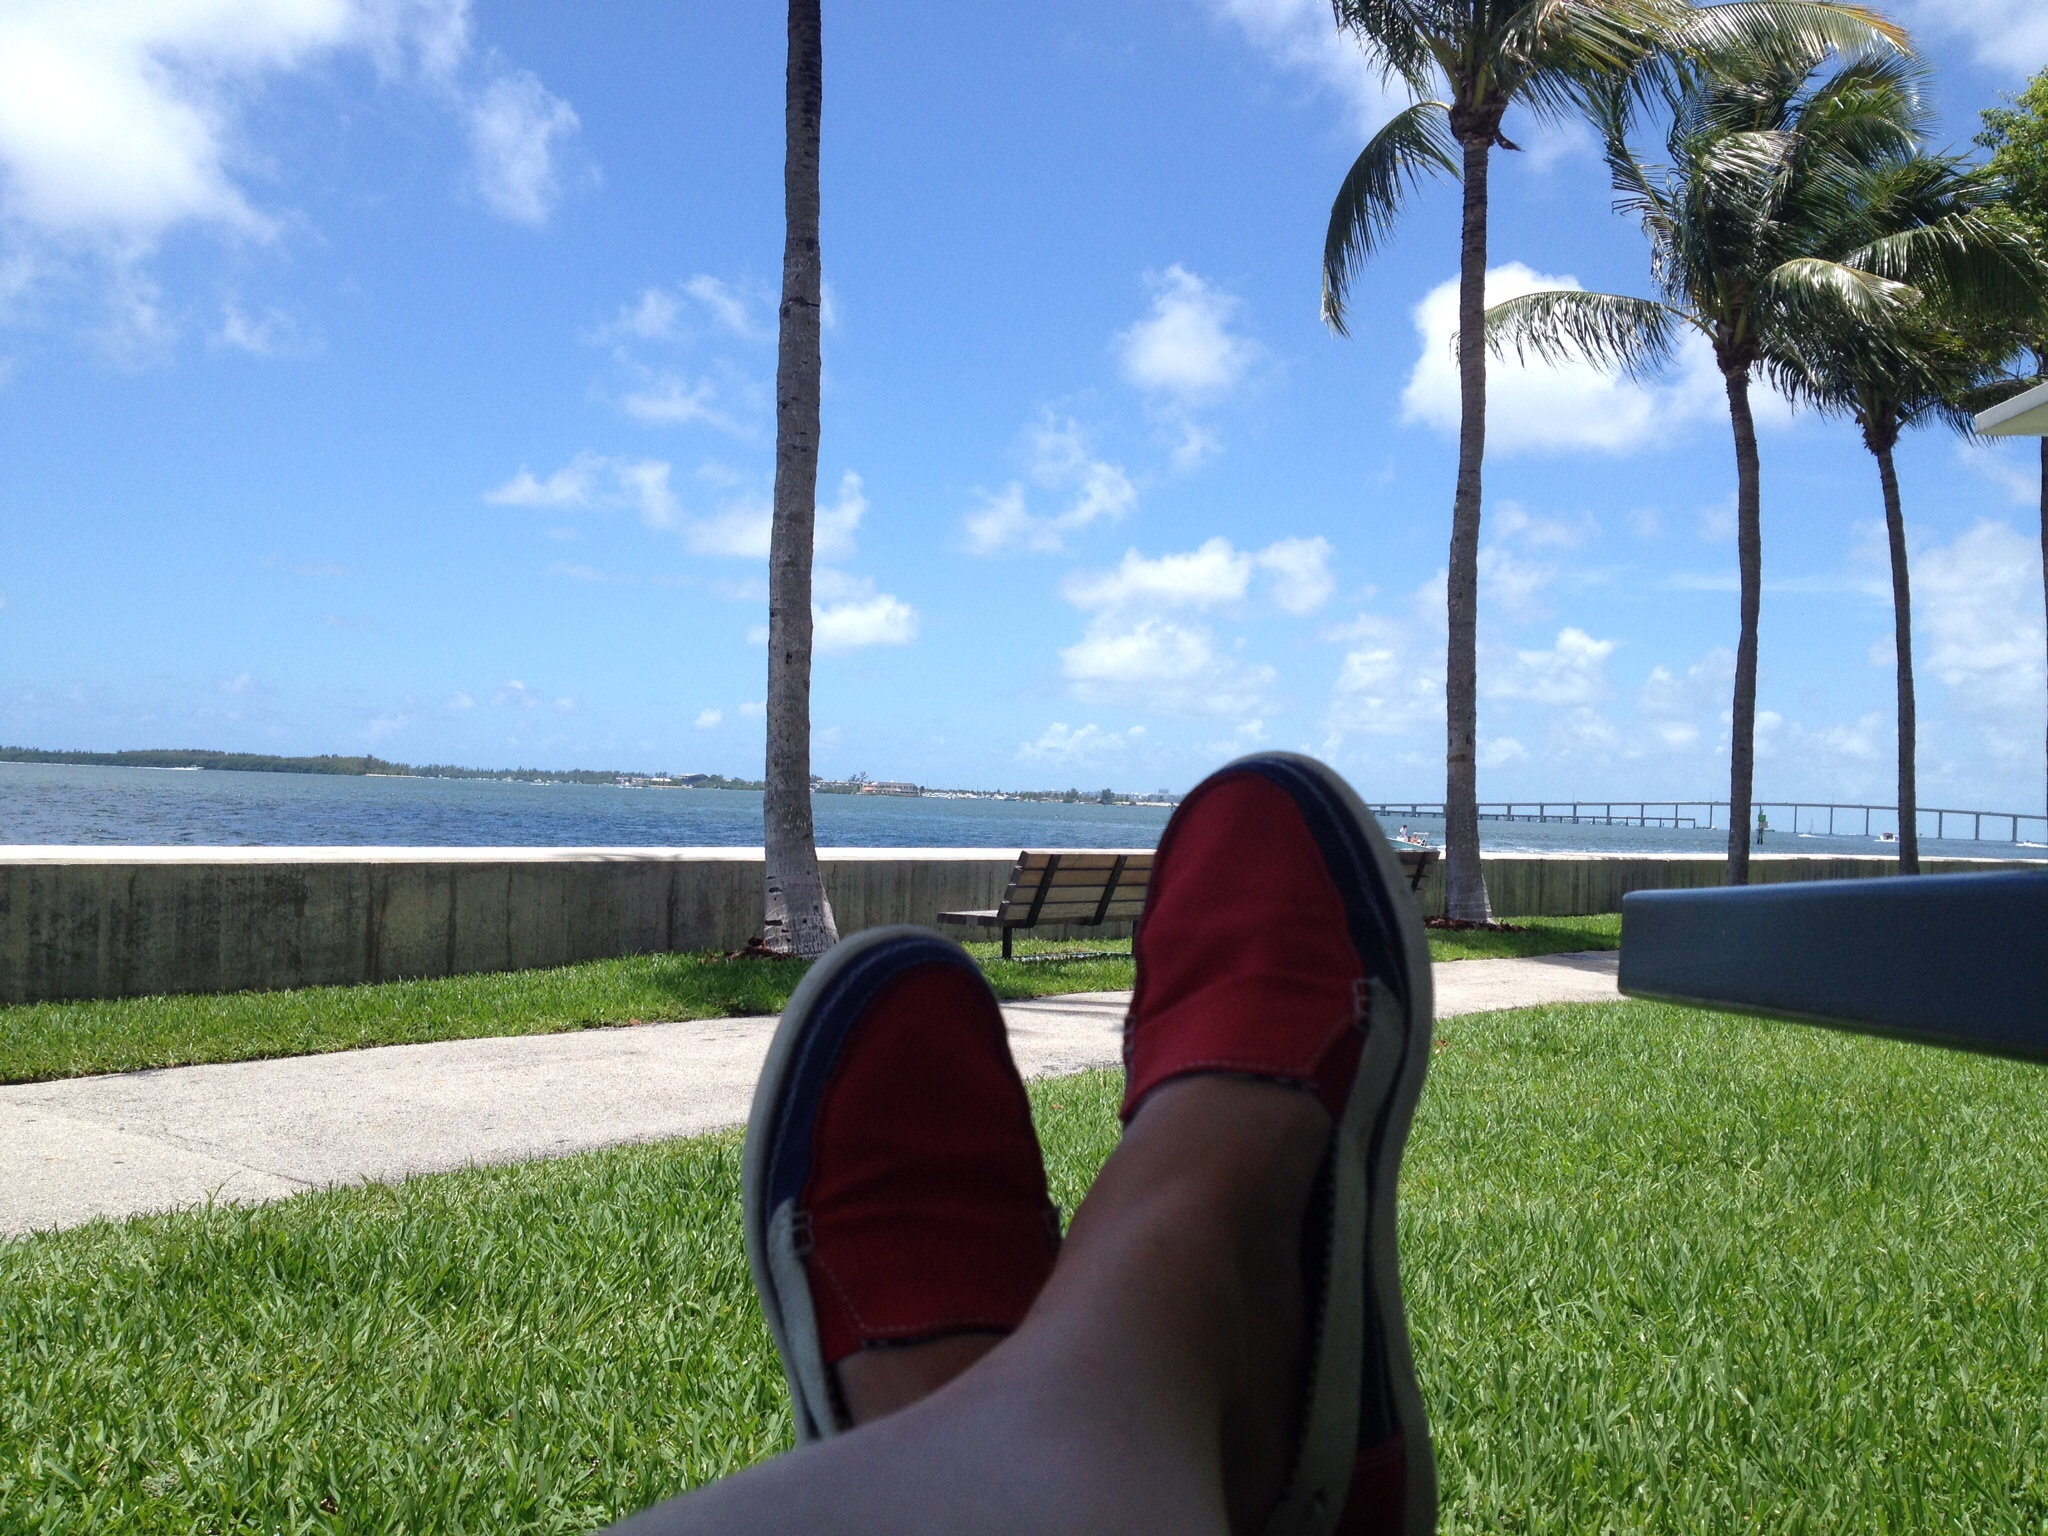 Relaxing by the bay, under the palm trees after a cycle.